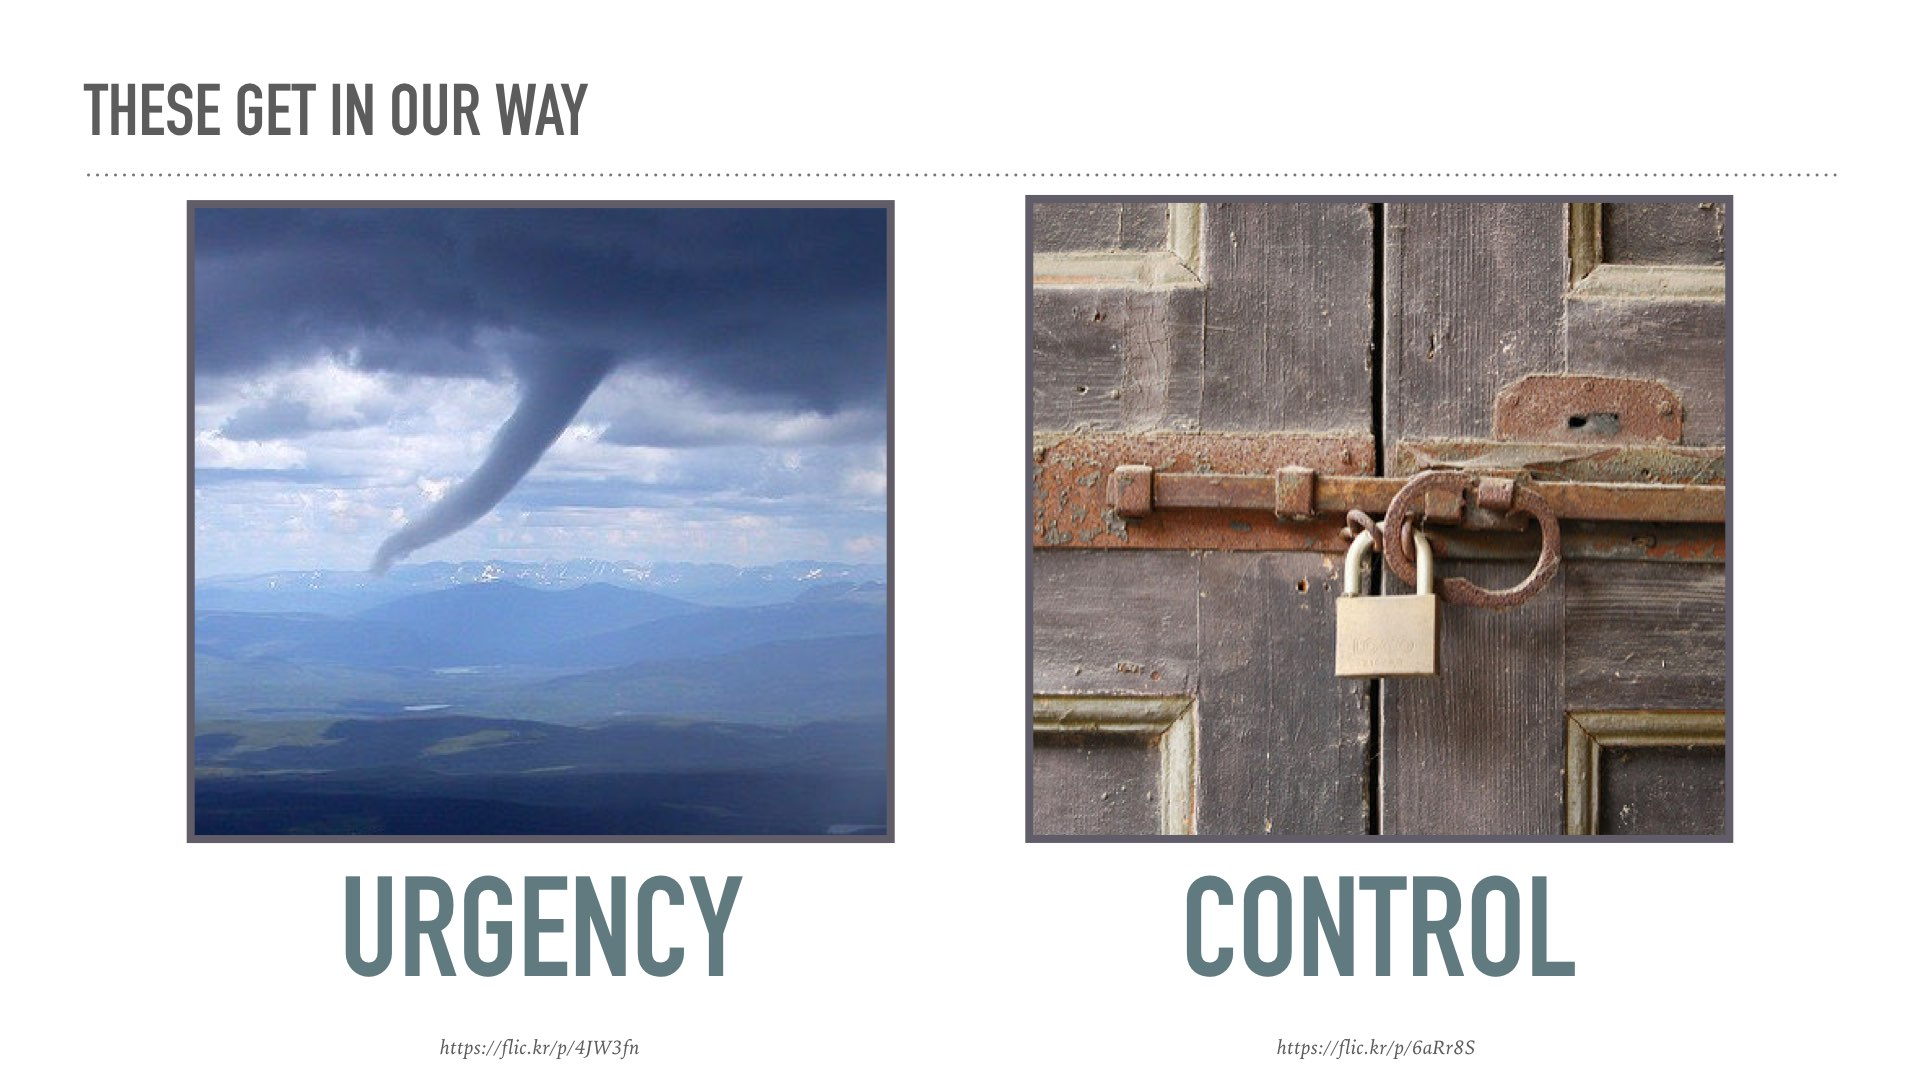 these get in our way: urgency and control